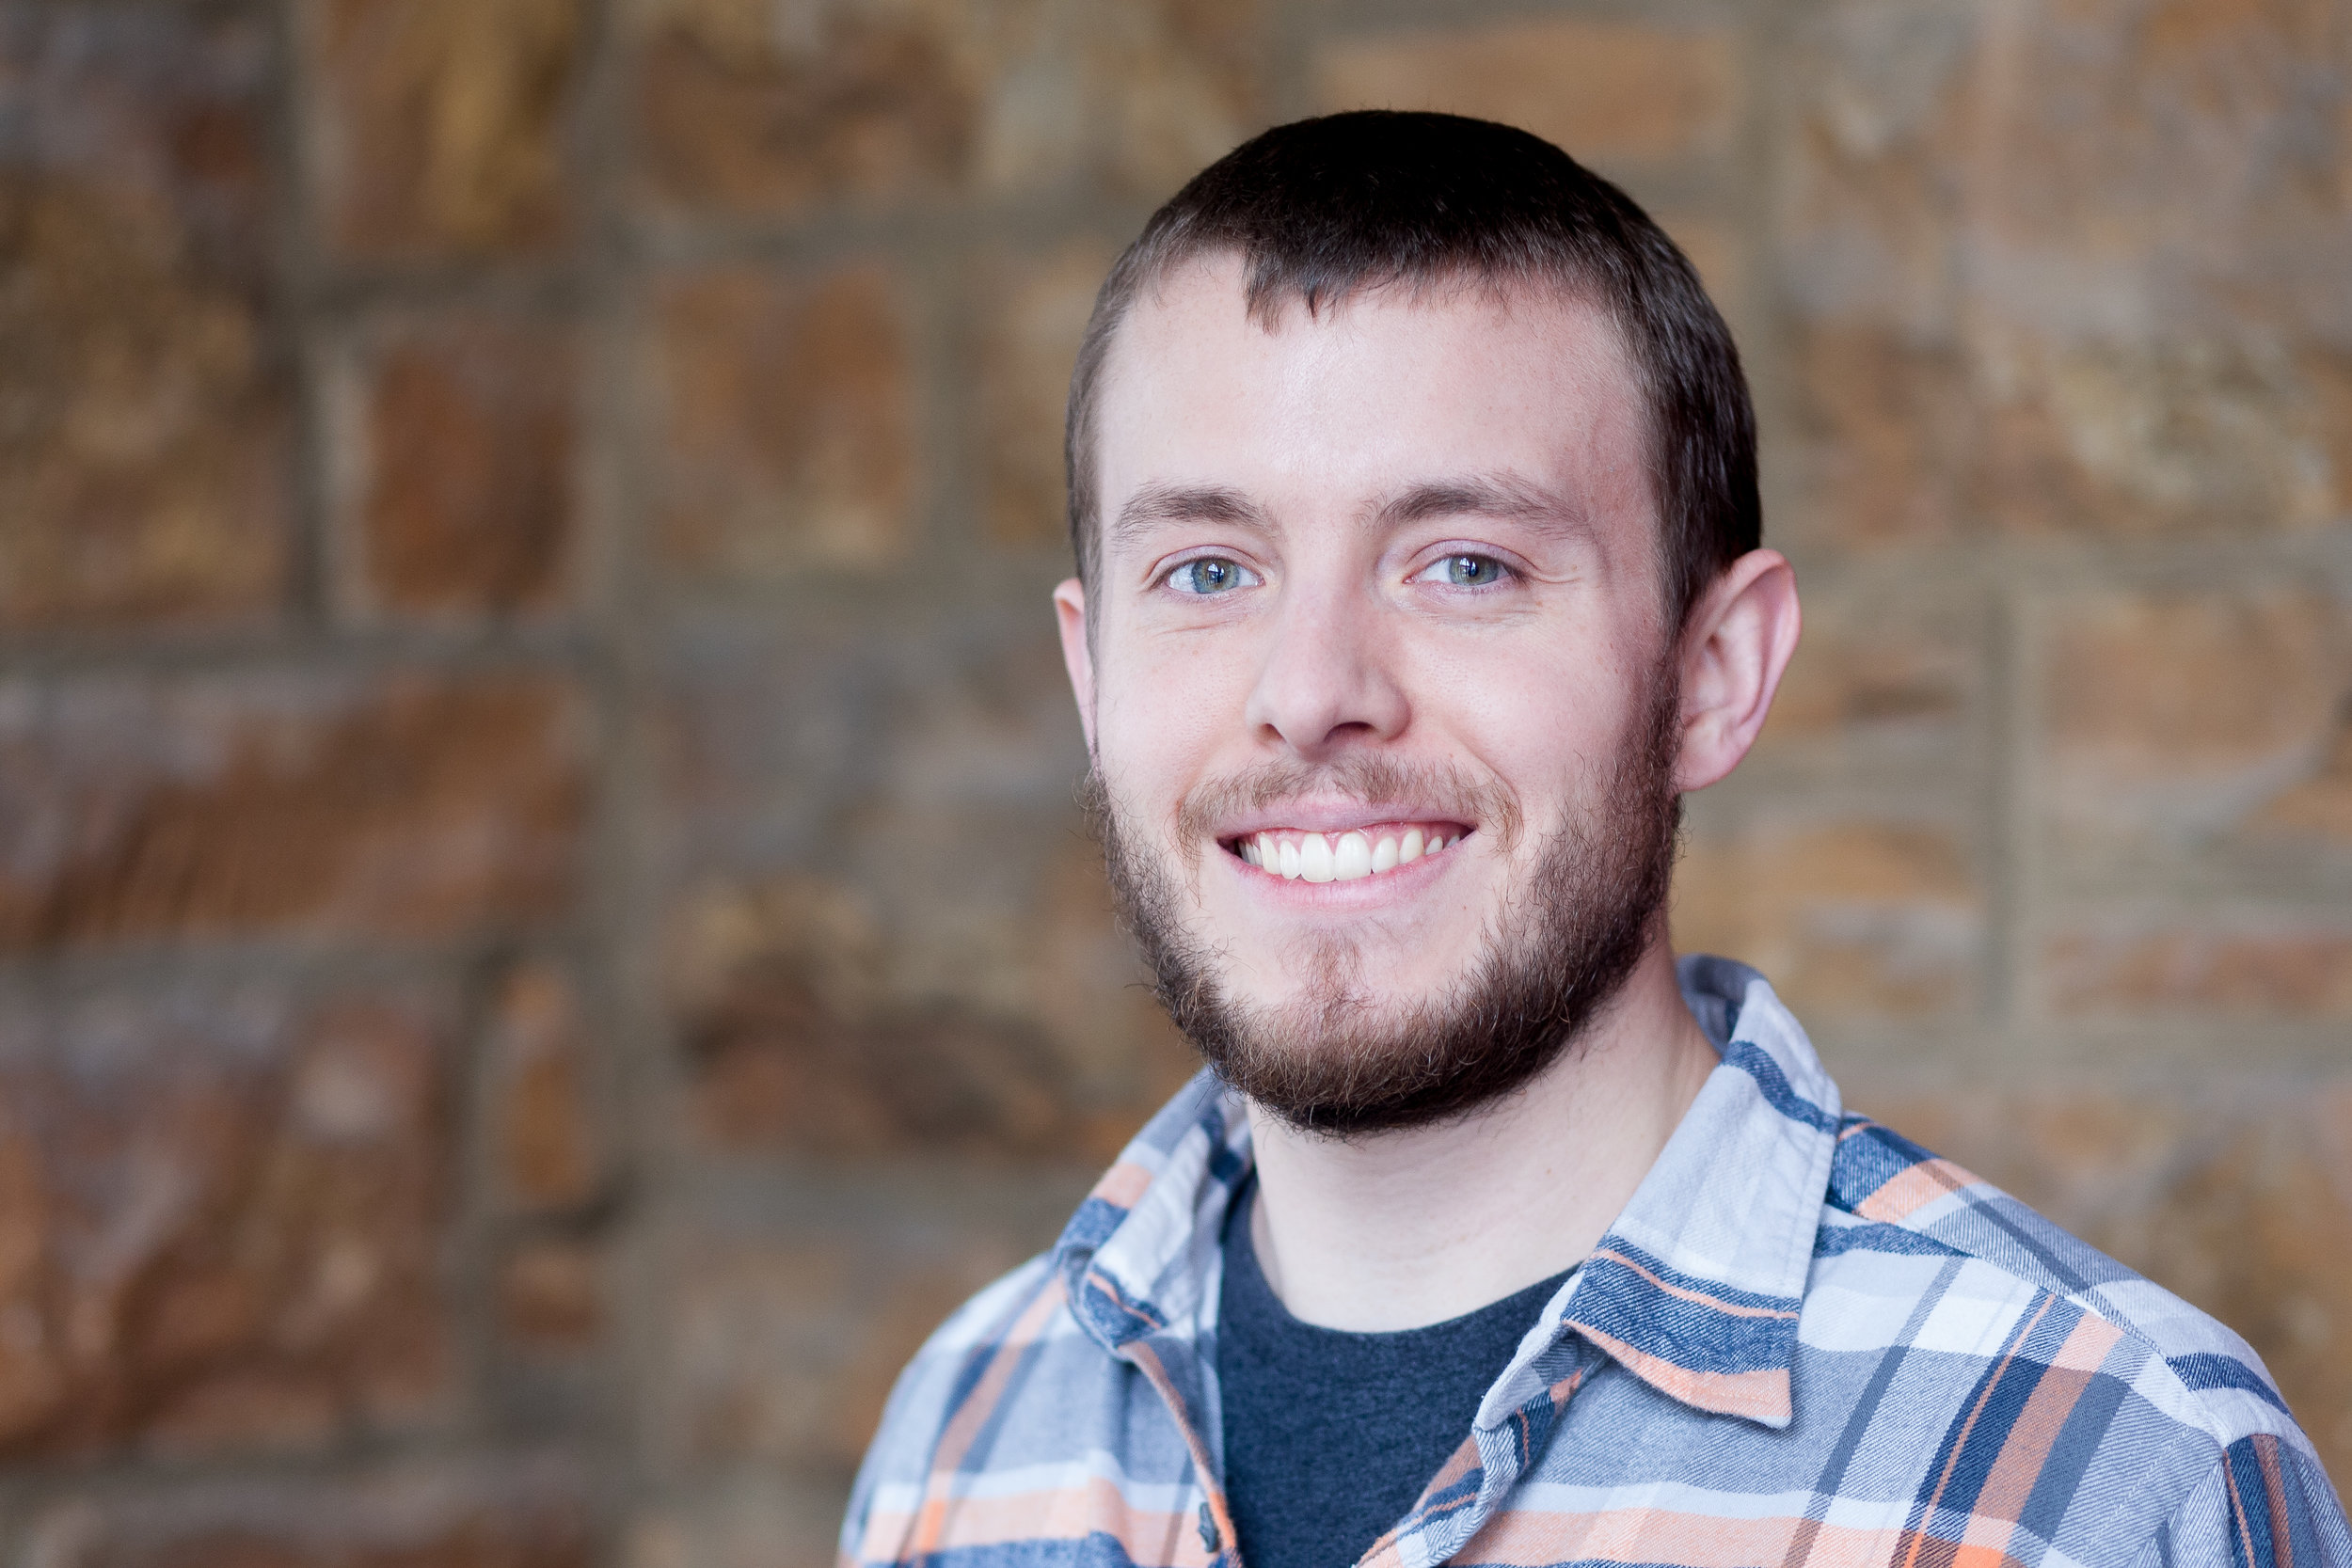 Alex Richardson - Alex is a deacon at Cities Church and leads the Bancroft Community Group. He is married to Kiersten, and they live in the Bancroft neighborhood of Minneapolis.